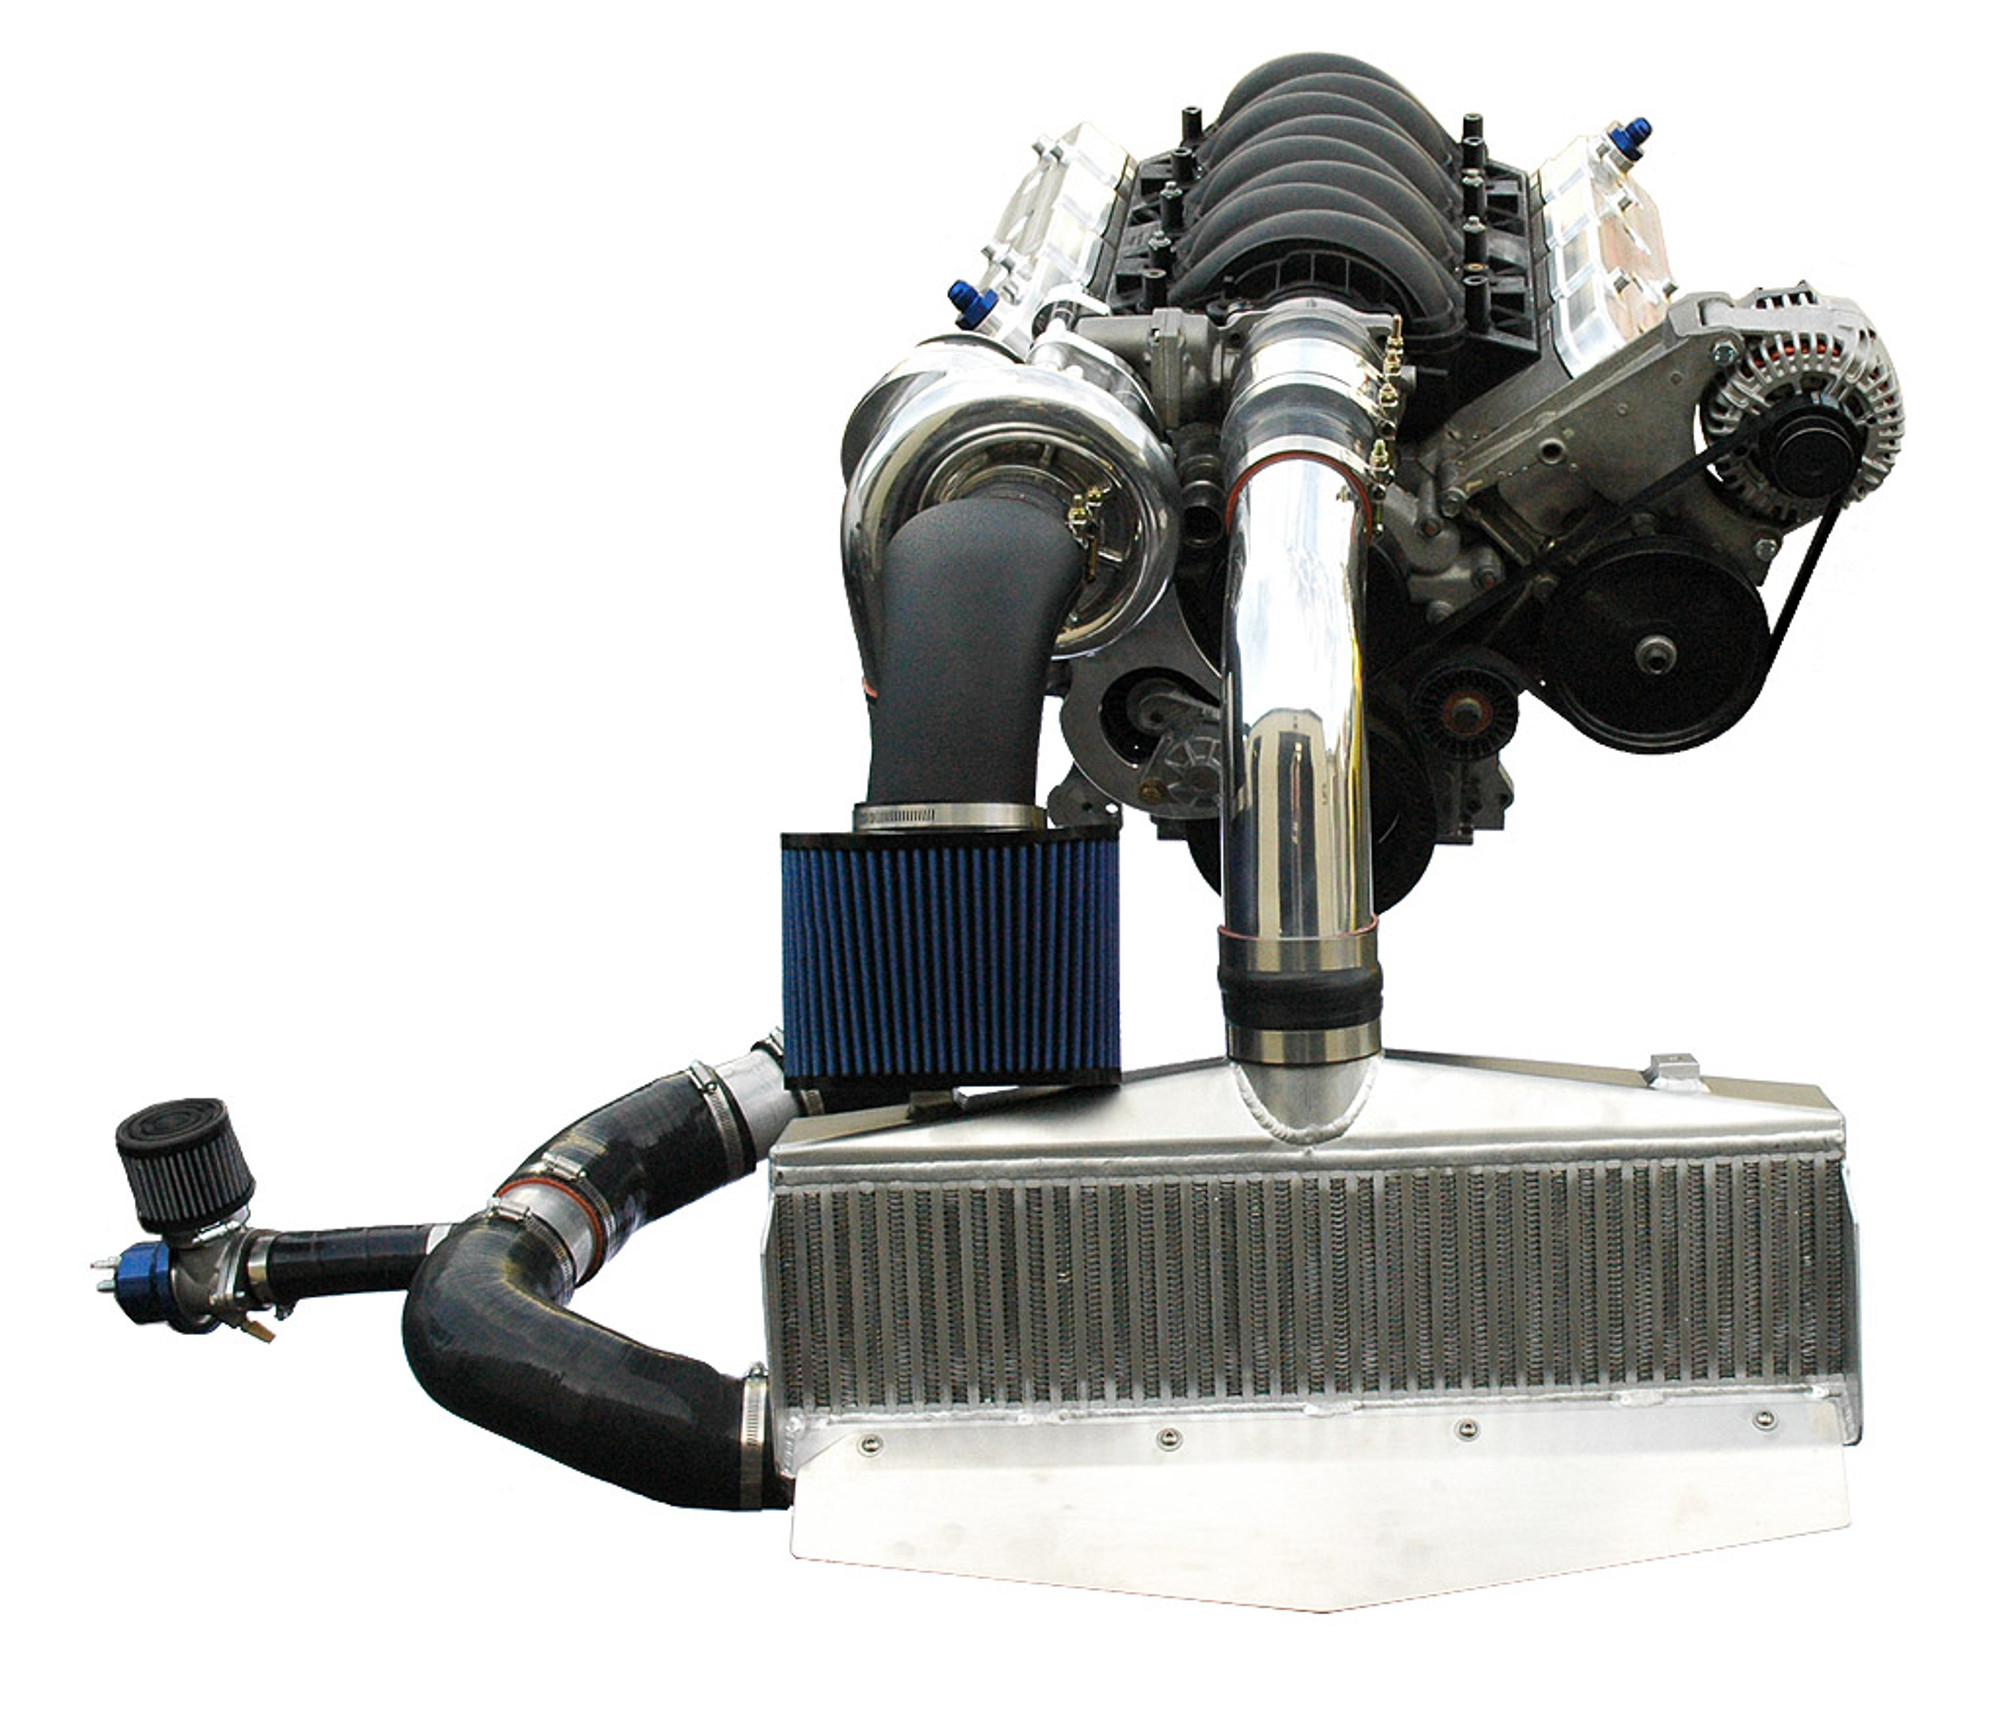 2000 Mustang Gt Vortech Supercharger: A&A Corvette Vortech Supercharger Kit For 05-11 Corvette